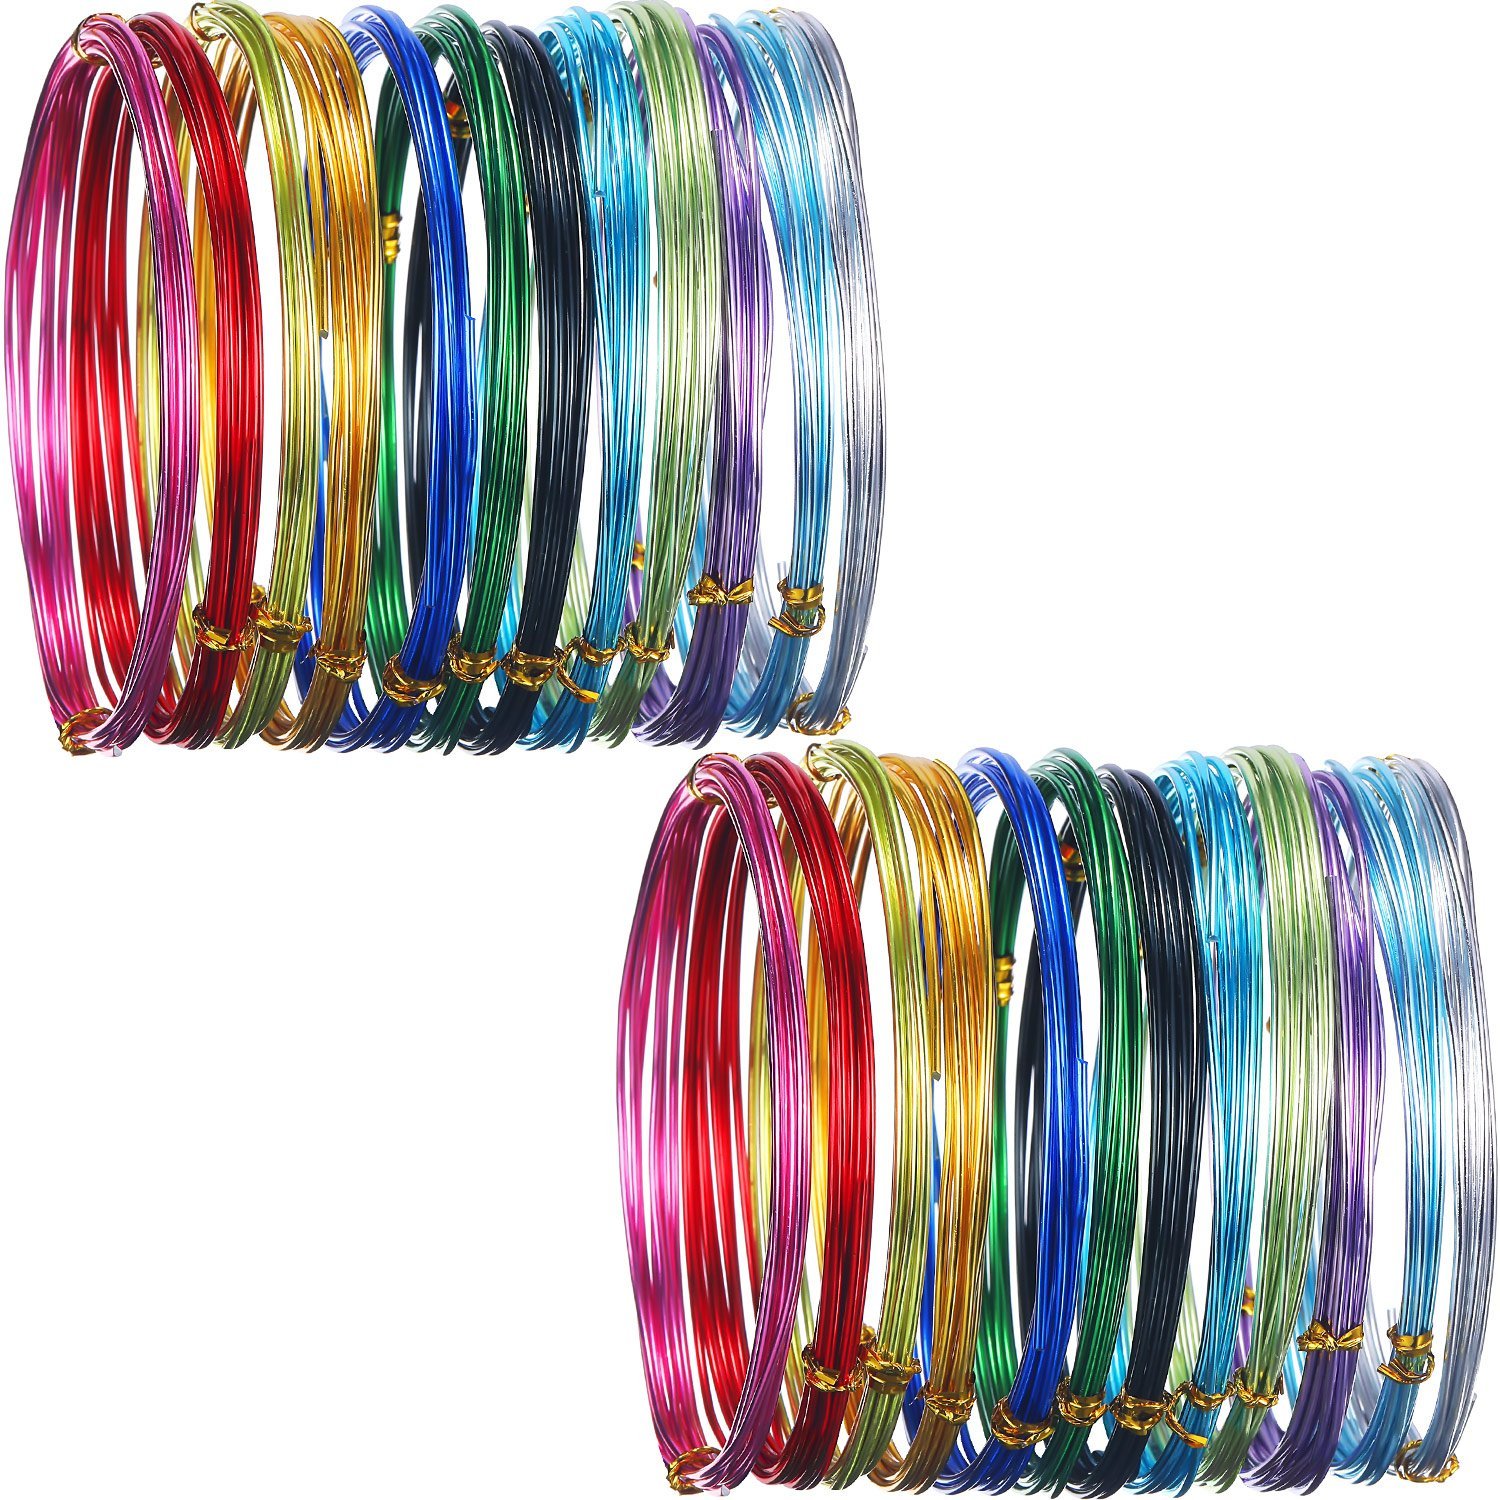 24 Rolls Multi-Colored Aluminum Craft Wire, Flexible Metal for Art Creation and Jewelry Ornaments, 15 Gauge and 20 Gauge Hestya